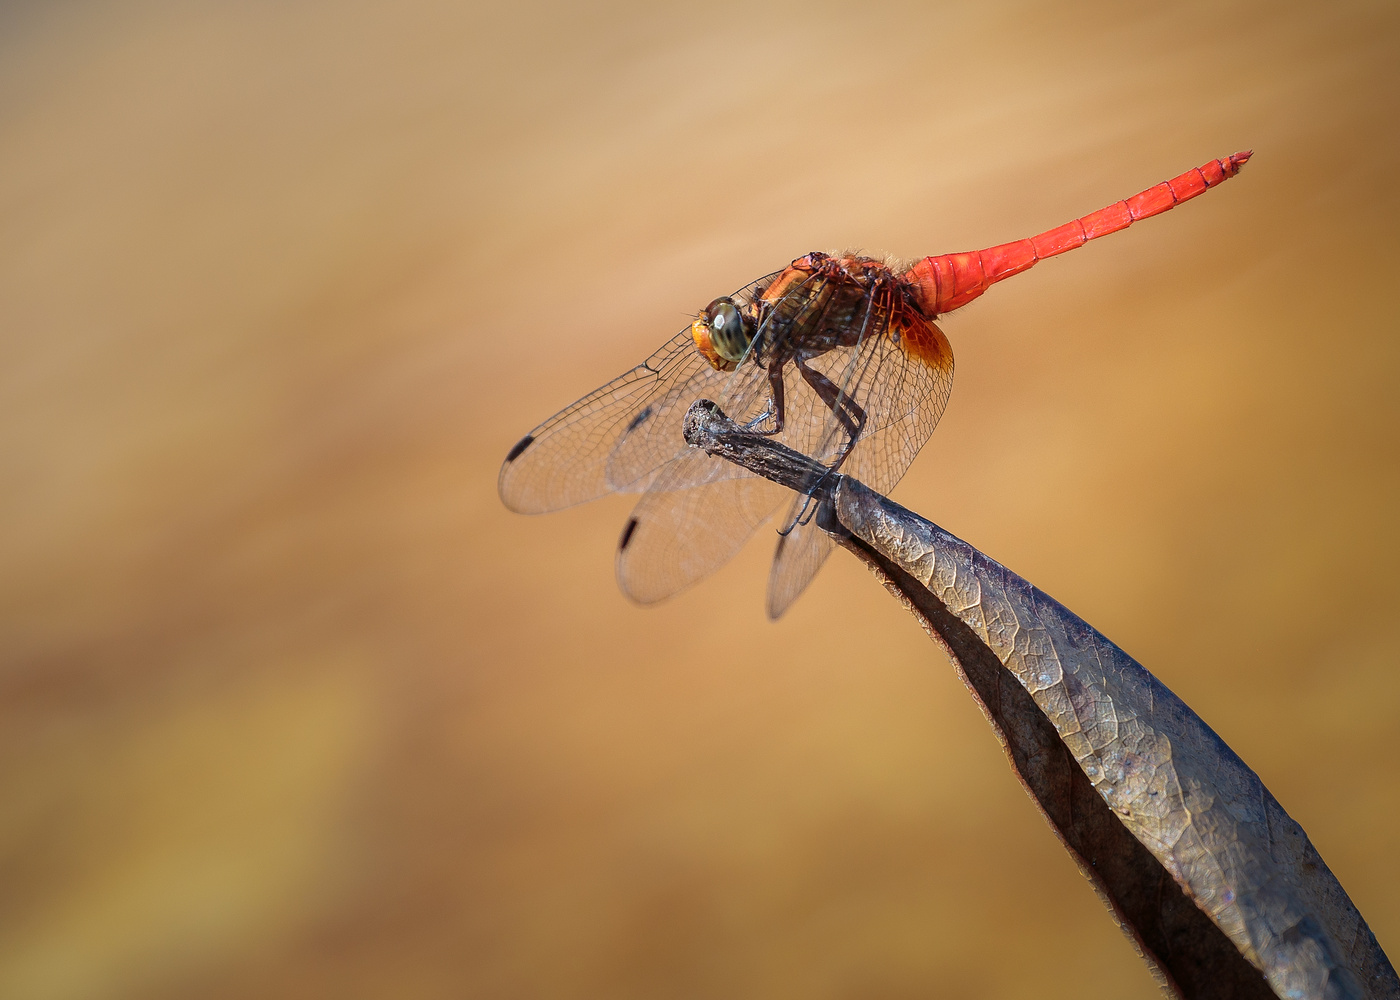 Damson fly dragon fly by Keith Newman